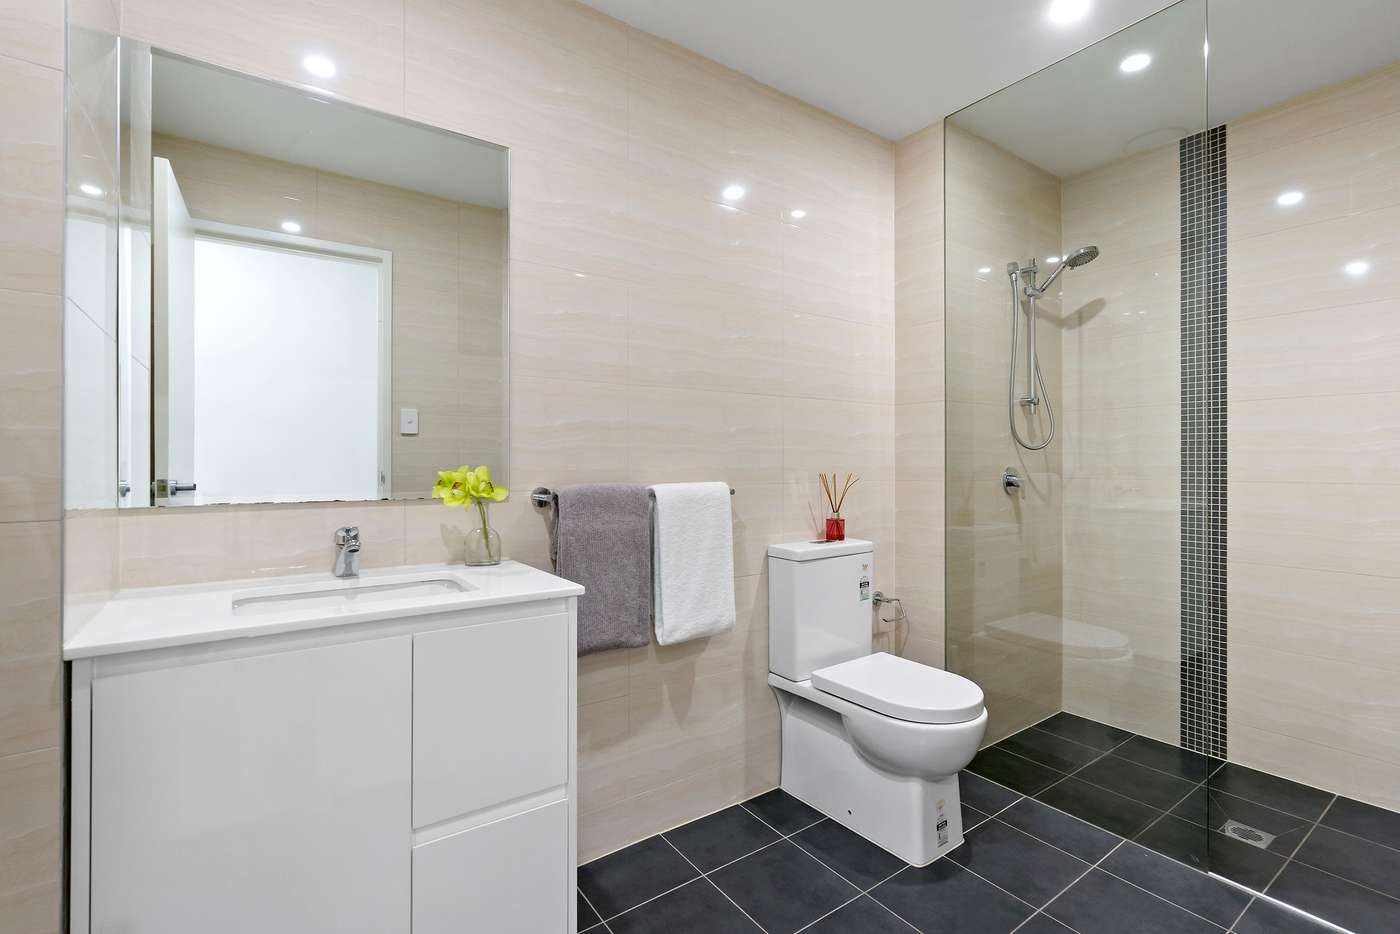 Fifth view of Homely apartment listing, 2101/1A Morton Street, Parramatta NSW 2150